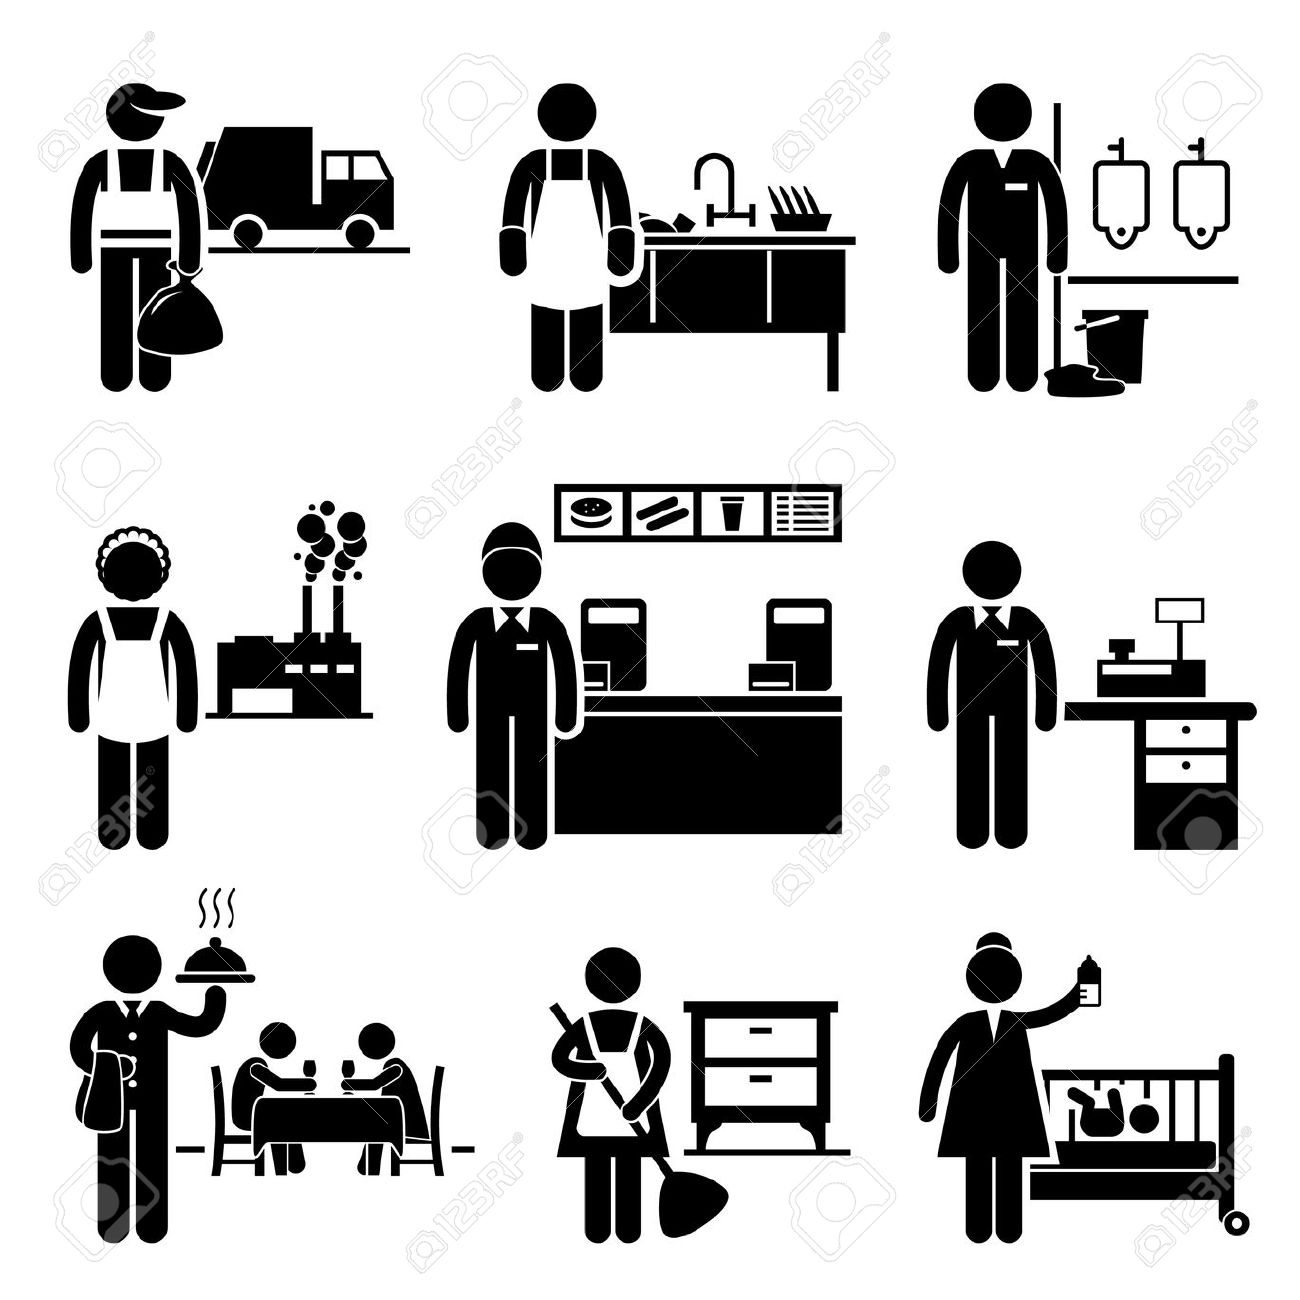 Cashier clipart silhouette. Income